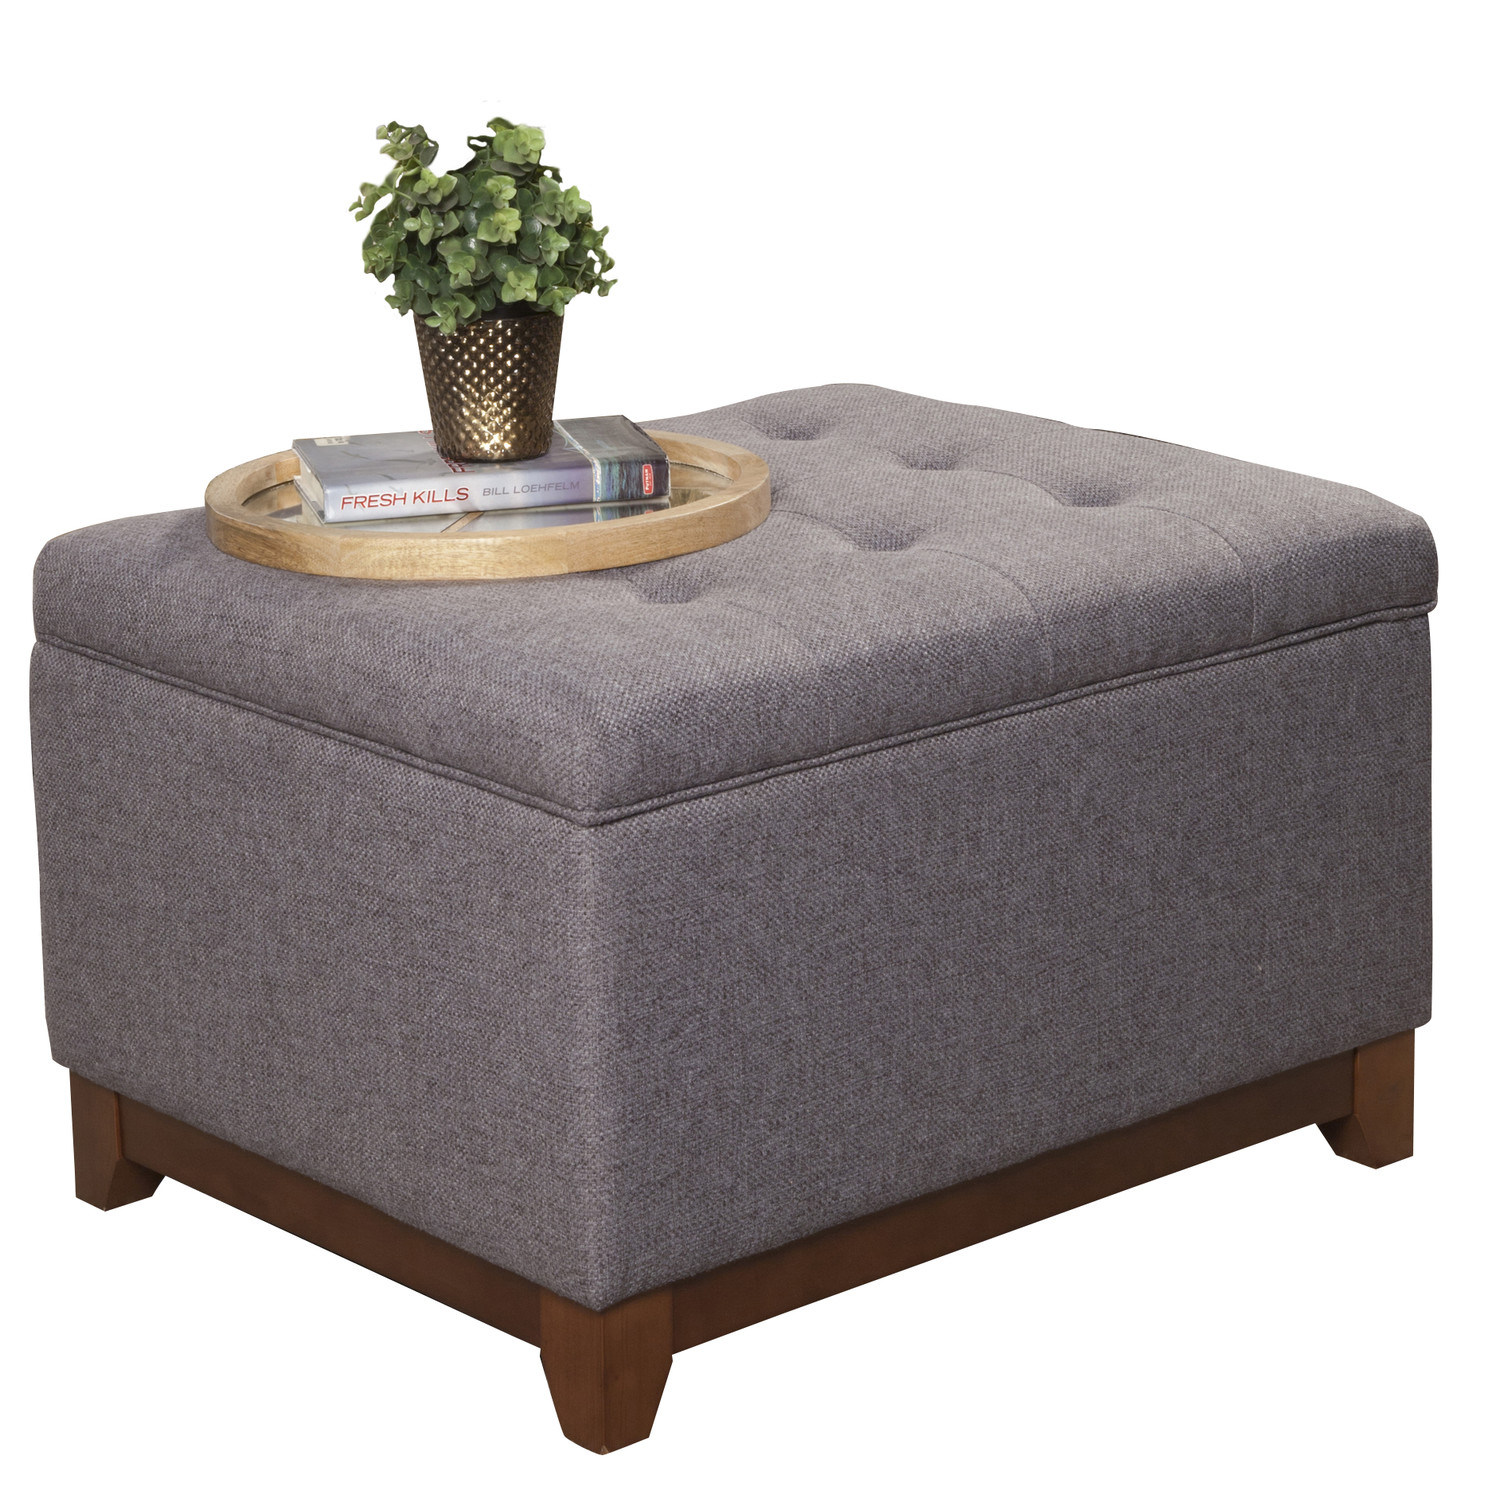 grey square slipcover blue cocktail leather table cover furniture clearance ott storage target tray round oversized wood accent full size patio and chairs modern lighting large